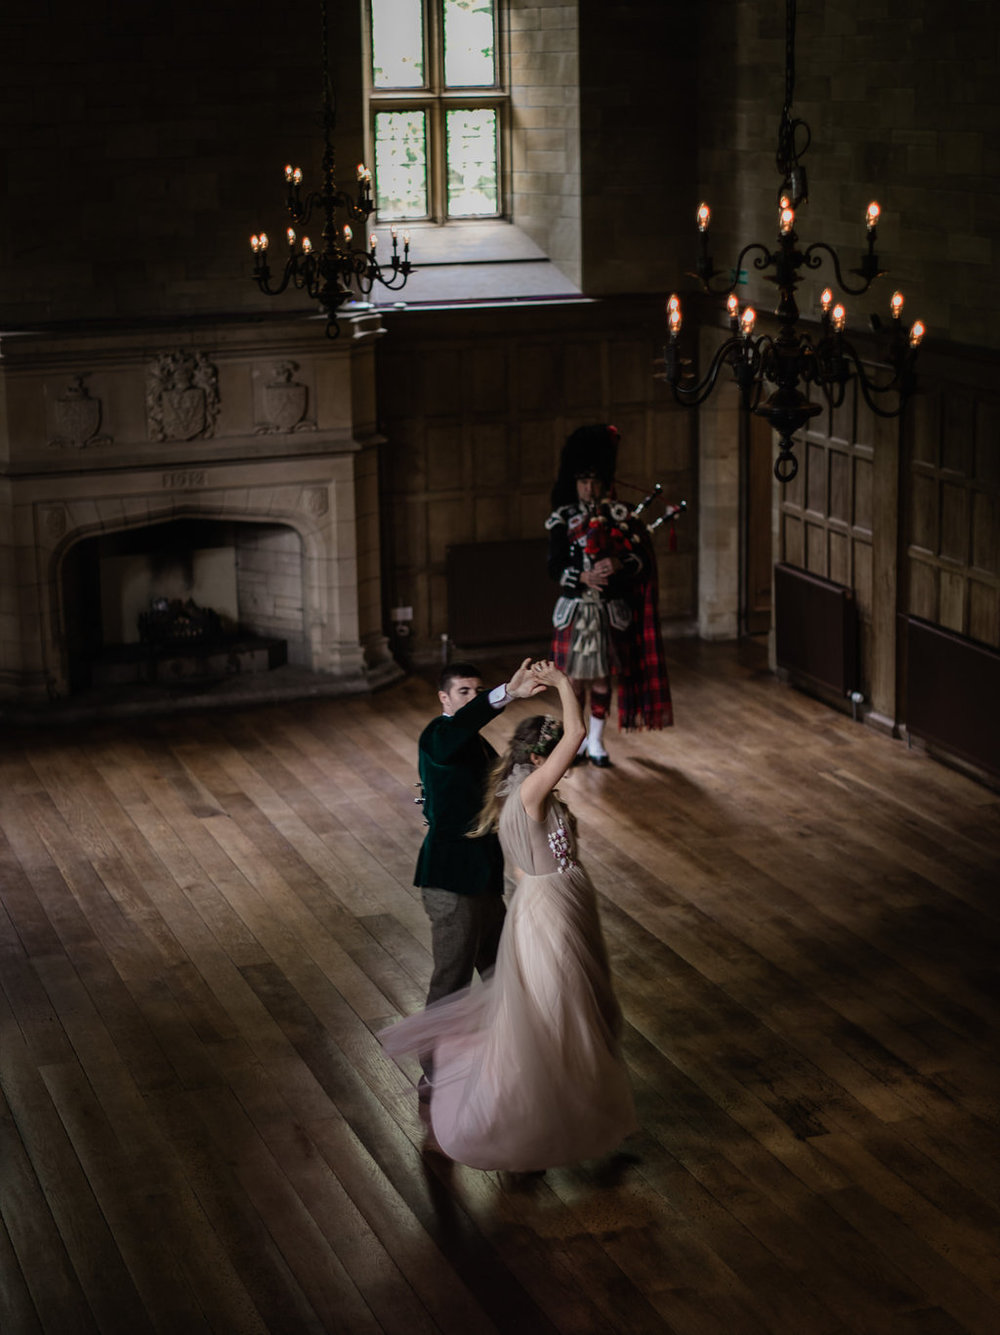 Escape the Ordinary - All fairytales require practical solutions, and we can't think of a better venue to host the wedding of your dreams than Achnagairn Castle, one of the gems of the Scottish Highlands. Not only is Achnagairn Castle a romantic manor on an ancient estate boasting a vaulted ballroom and verdant gardens, it is also comprised of ten designer suites and seven guest lodges that can host up to 120 of your friends and family. Whether your wedding is planned for a snow-dusted winter evening or a bright spring morning, Achnagairn Castle is the perfect backdrop for your fairytale day.Visit WebsiteScottish Highlands, United KingdomPhone: +44 845 057 4212Email: enquiries@perfect-manors.com